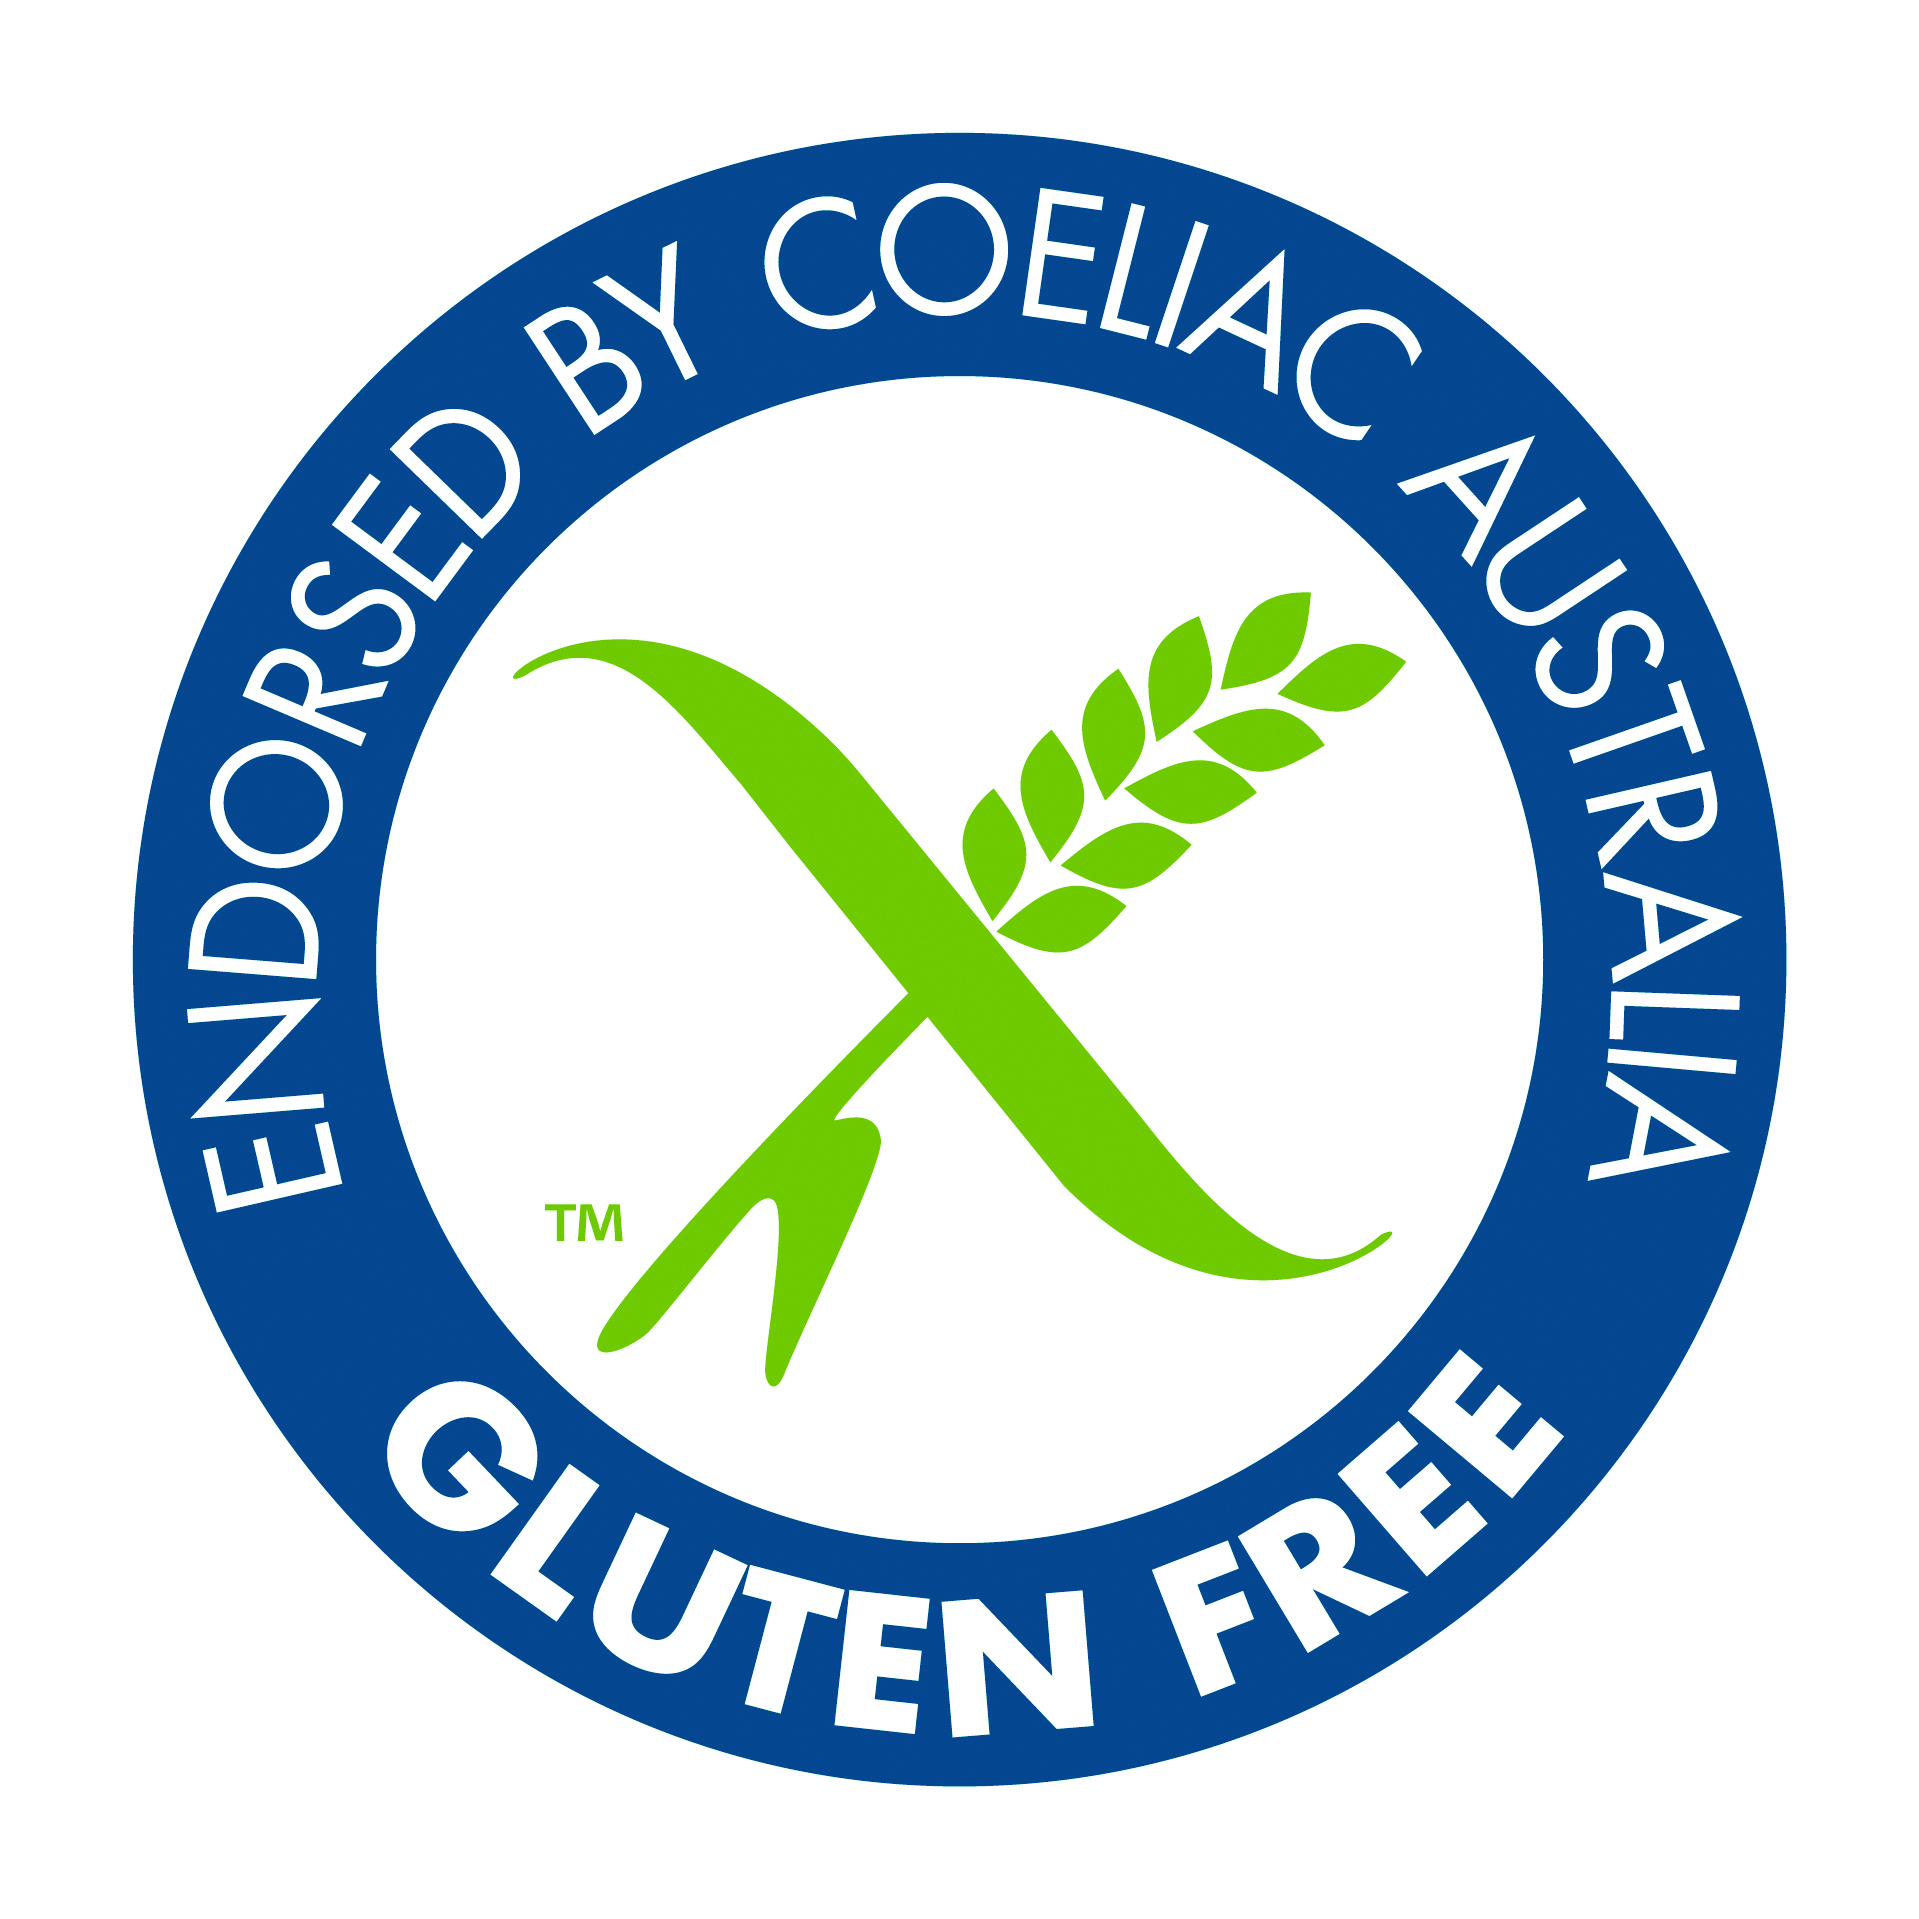 Coeliac_Endorsed_Symbol_Inc GF TM highres CMYK.jpg